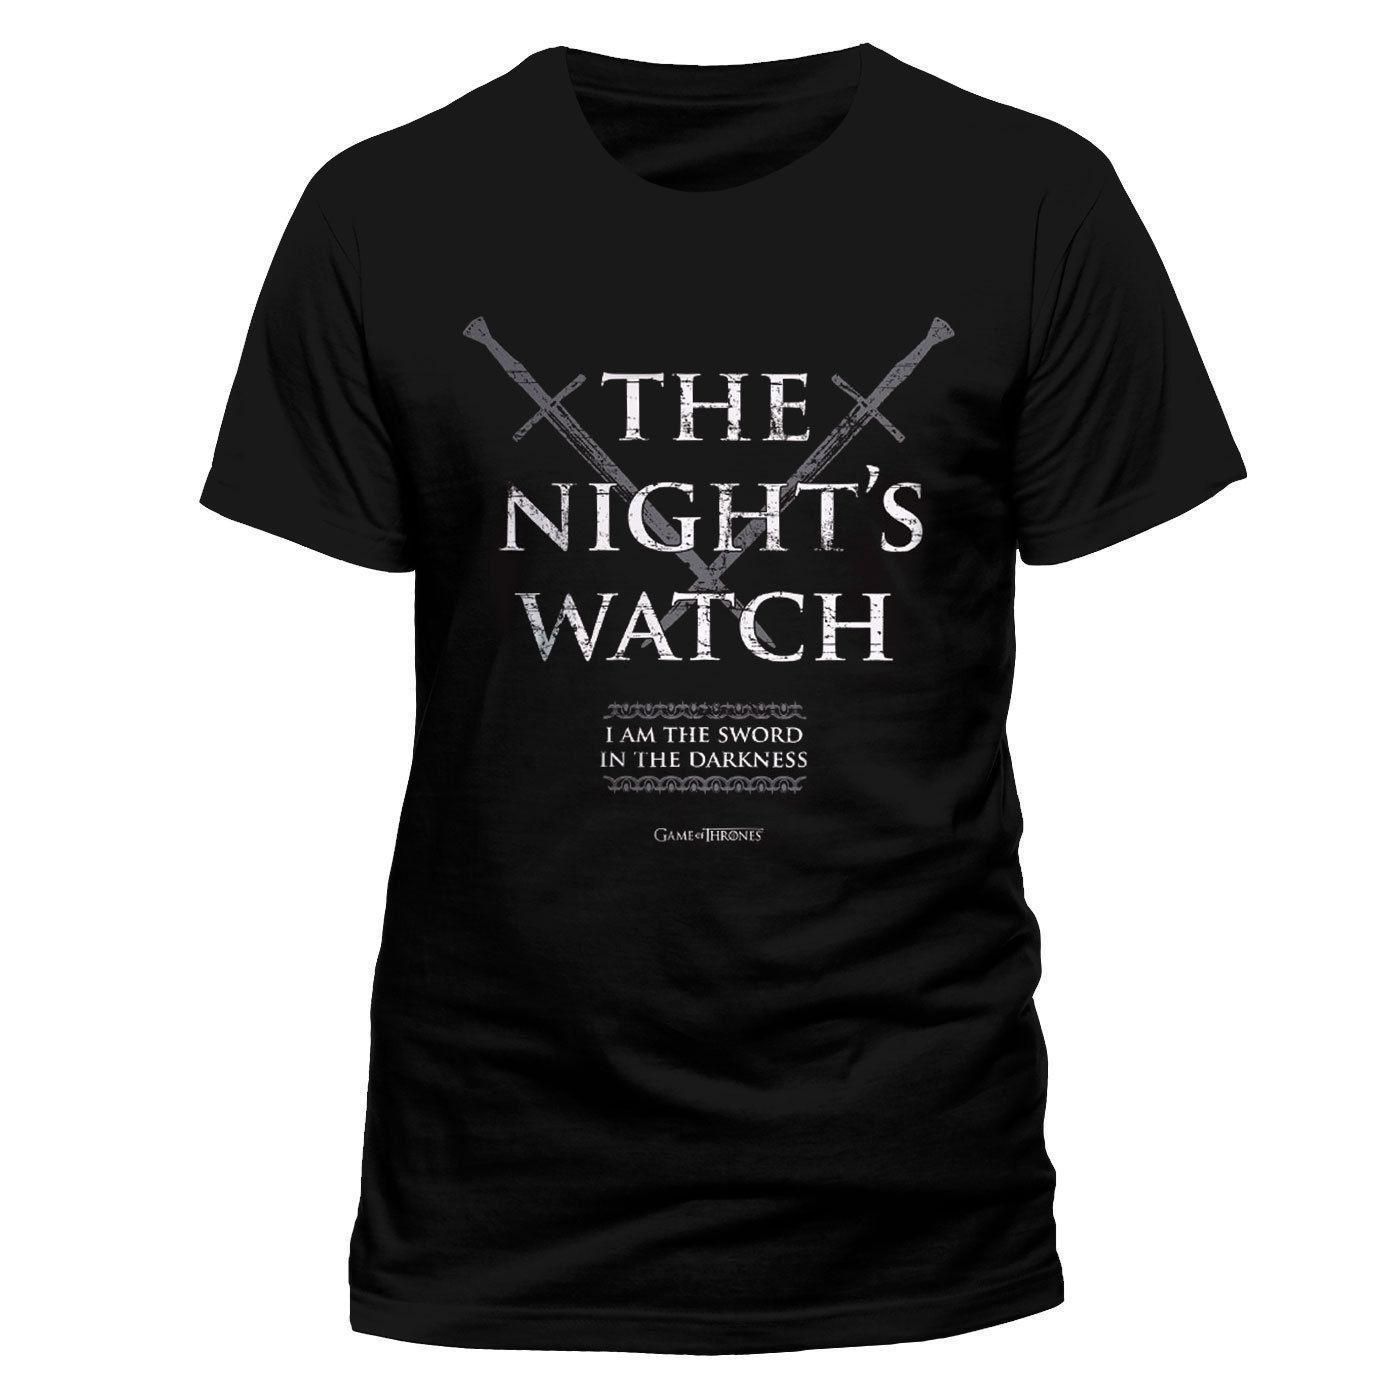 29d4f271c Mens Designer T Shirts Shirt Game Of Thrones Licensed Nights Watch Tee T  Shirt House Stark Men Tee Shirts Online Cool Tee Shirts From Discount9, ...